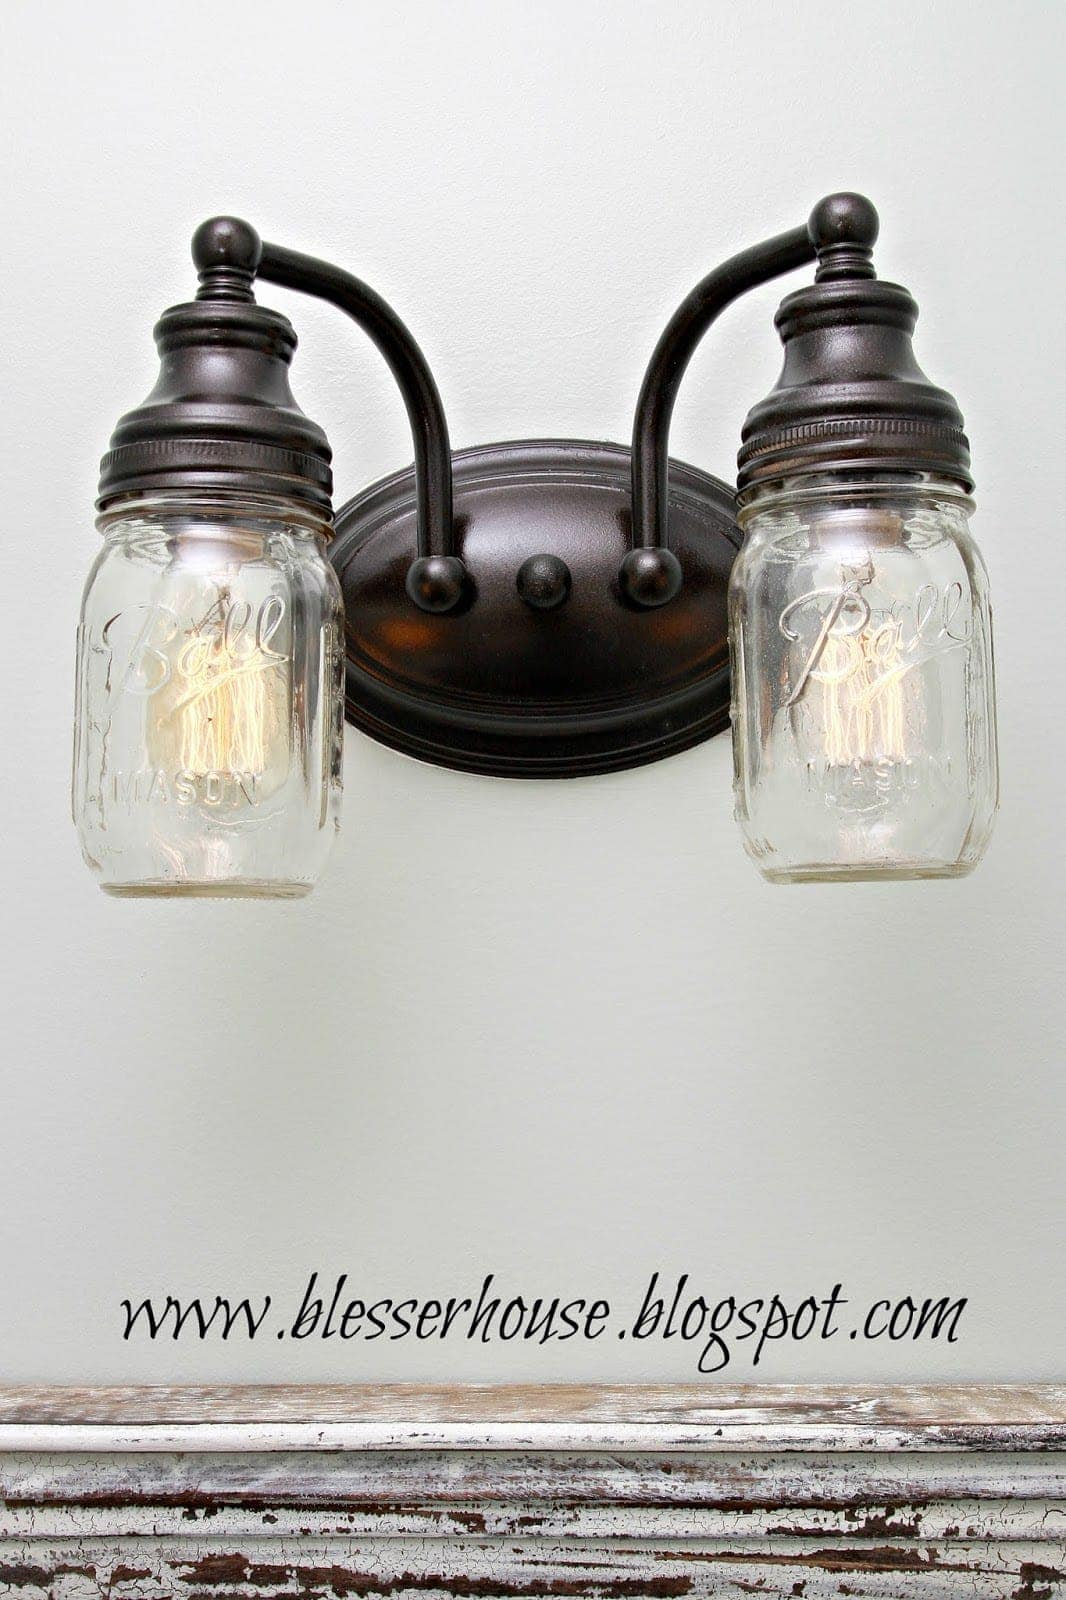 Mason Jar Vanity Lights Diy : DIY Mason Jar Vanity Light - Bless er House